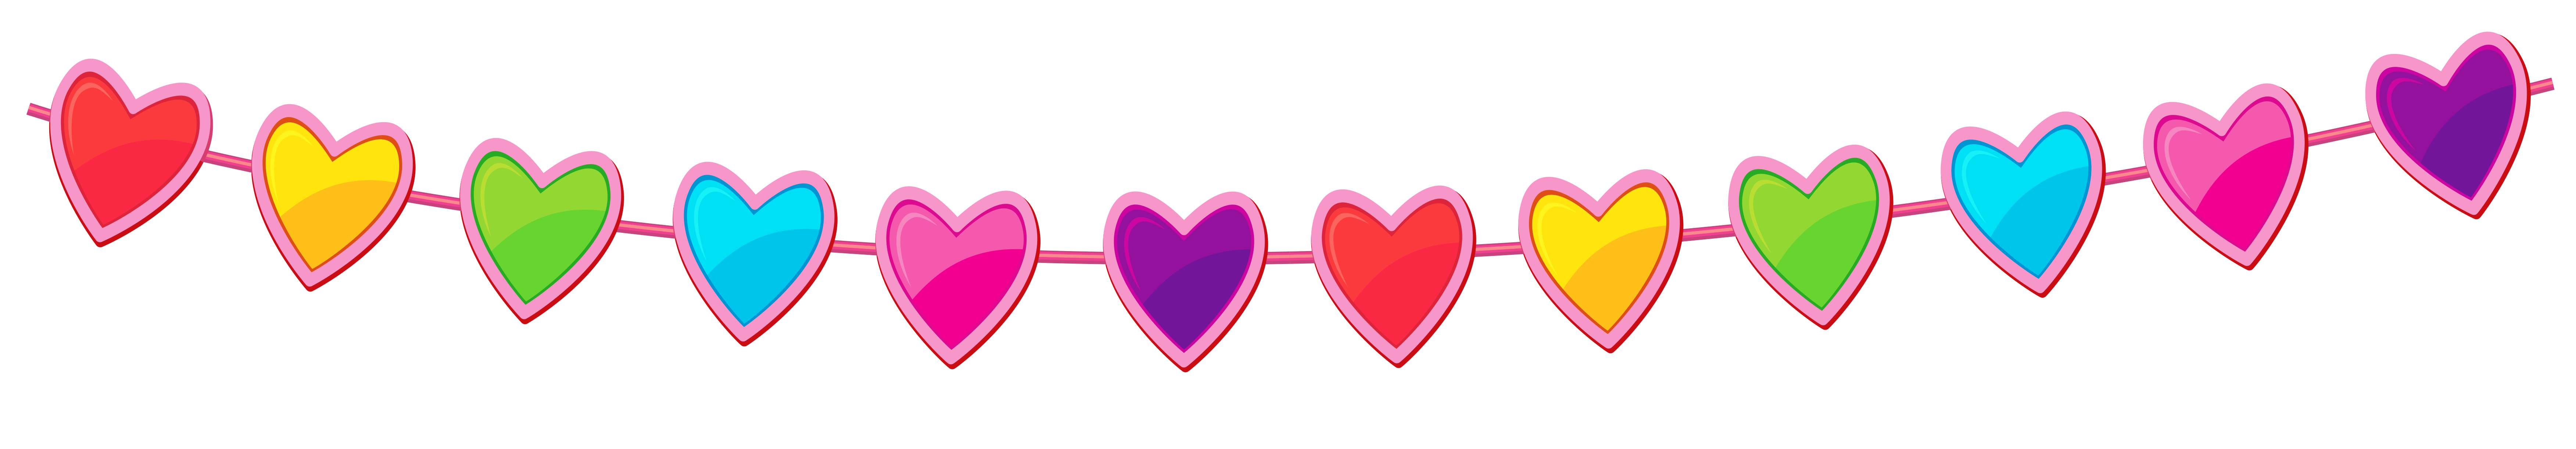 Hearts In A Line Clipart.